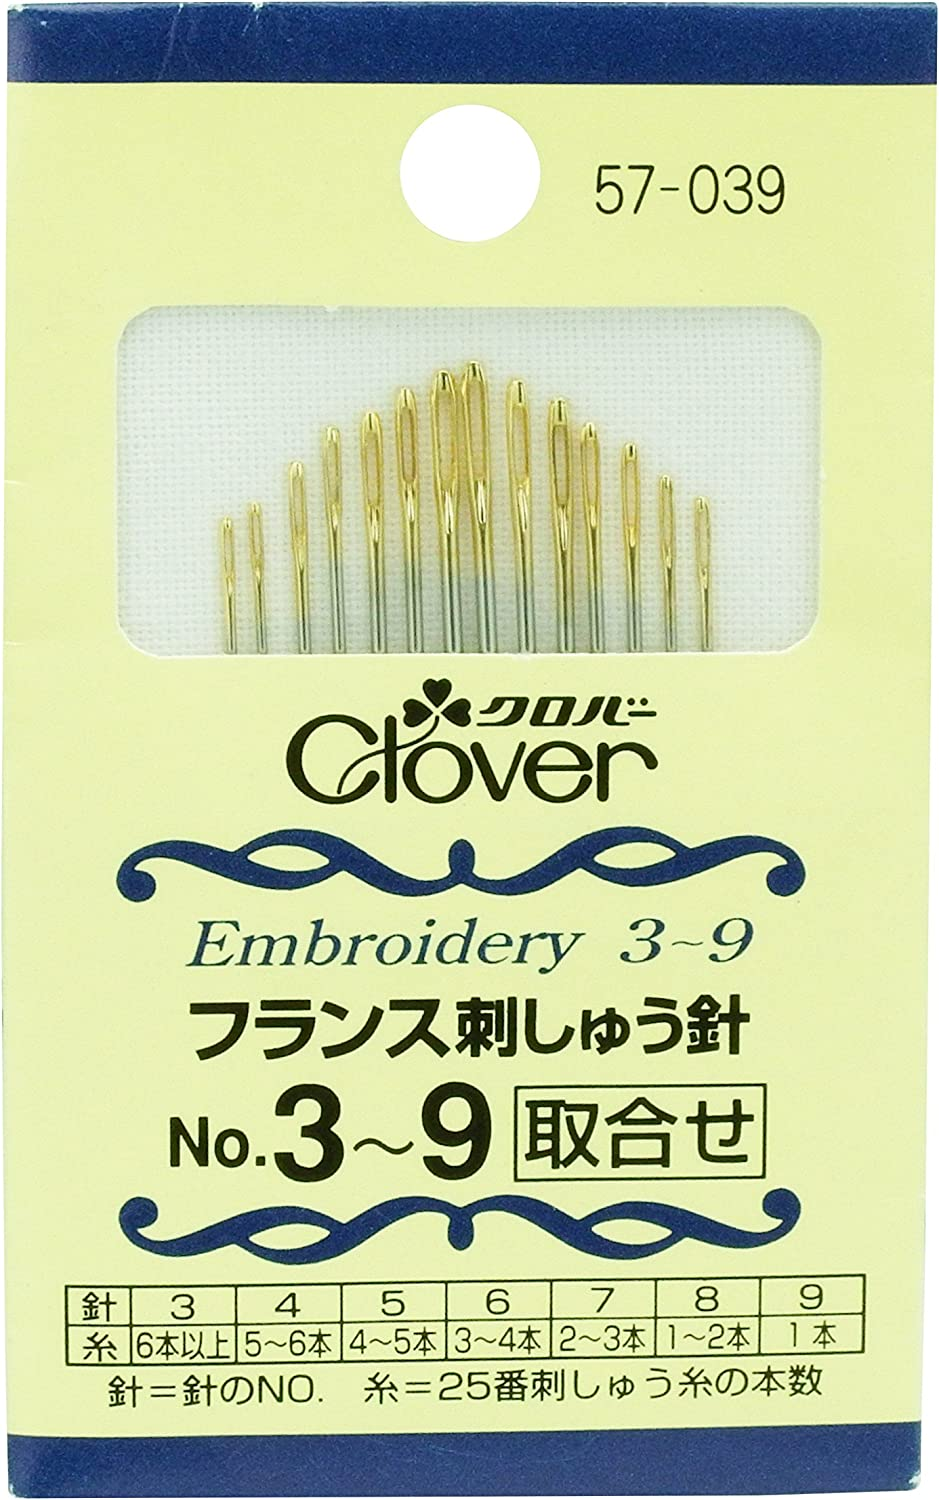 No.3 Manufacturer regenerated product ~ New popularity 9 Clover France needle japan embroidery import <57-039>